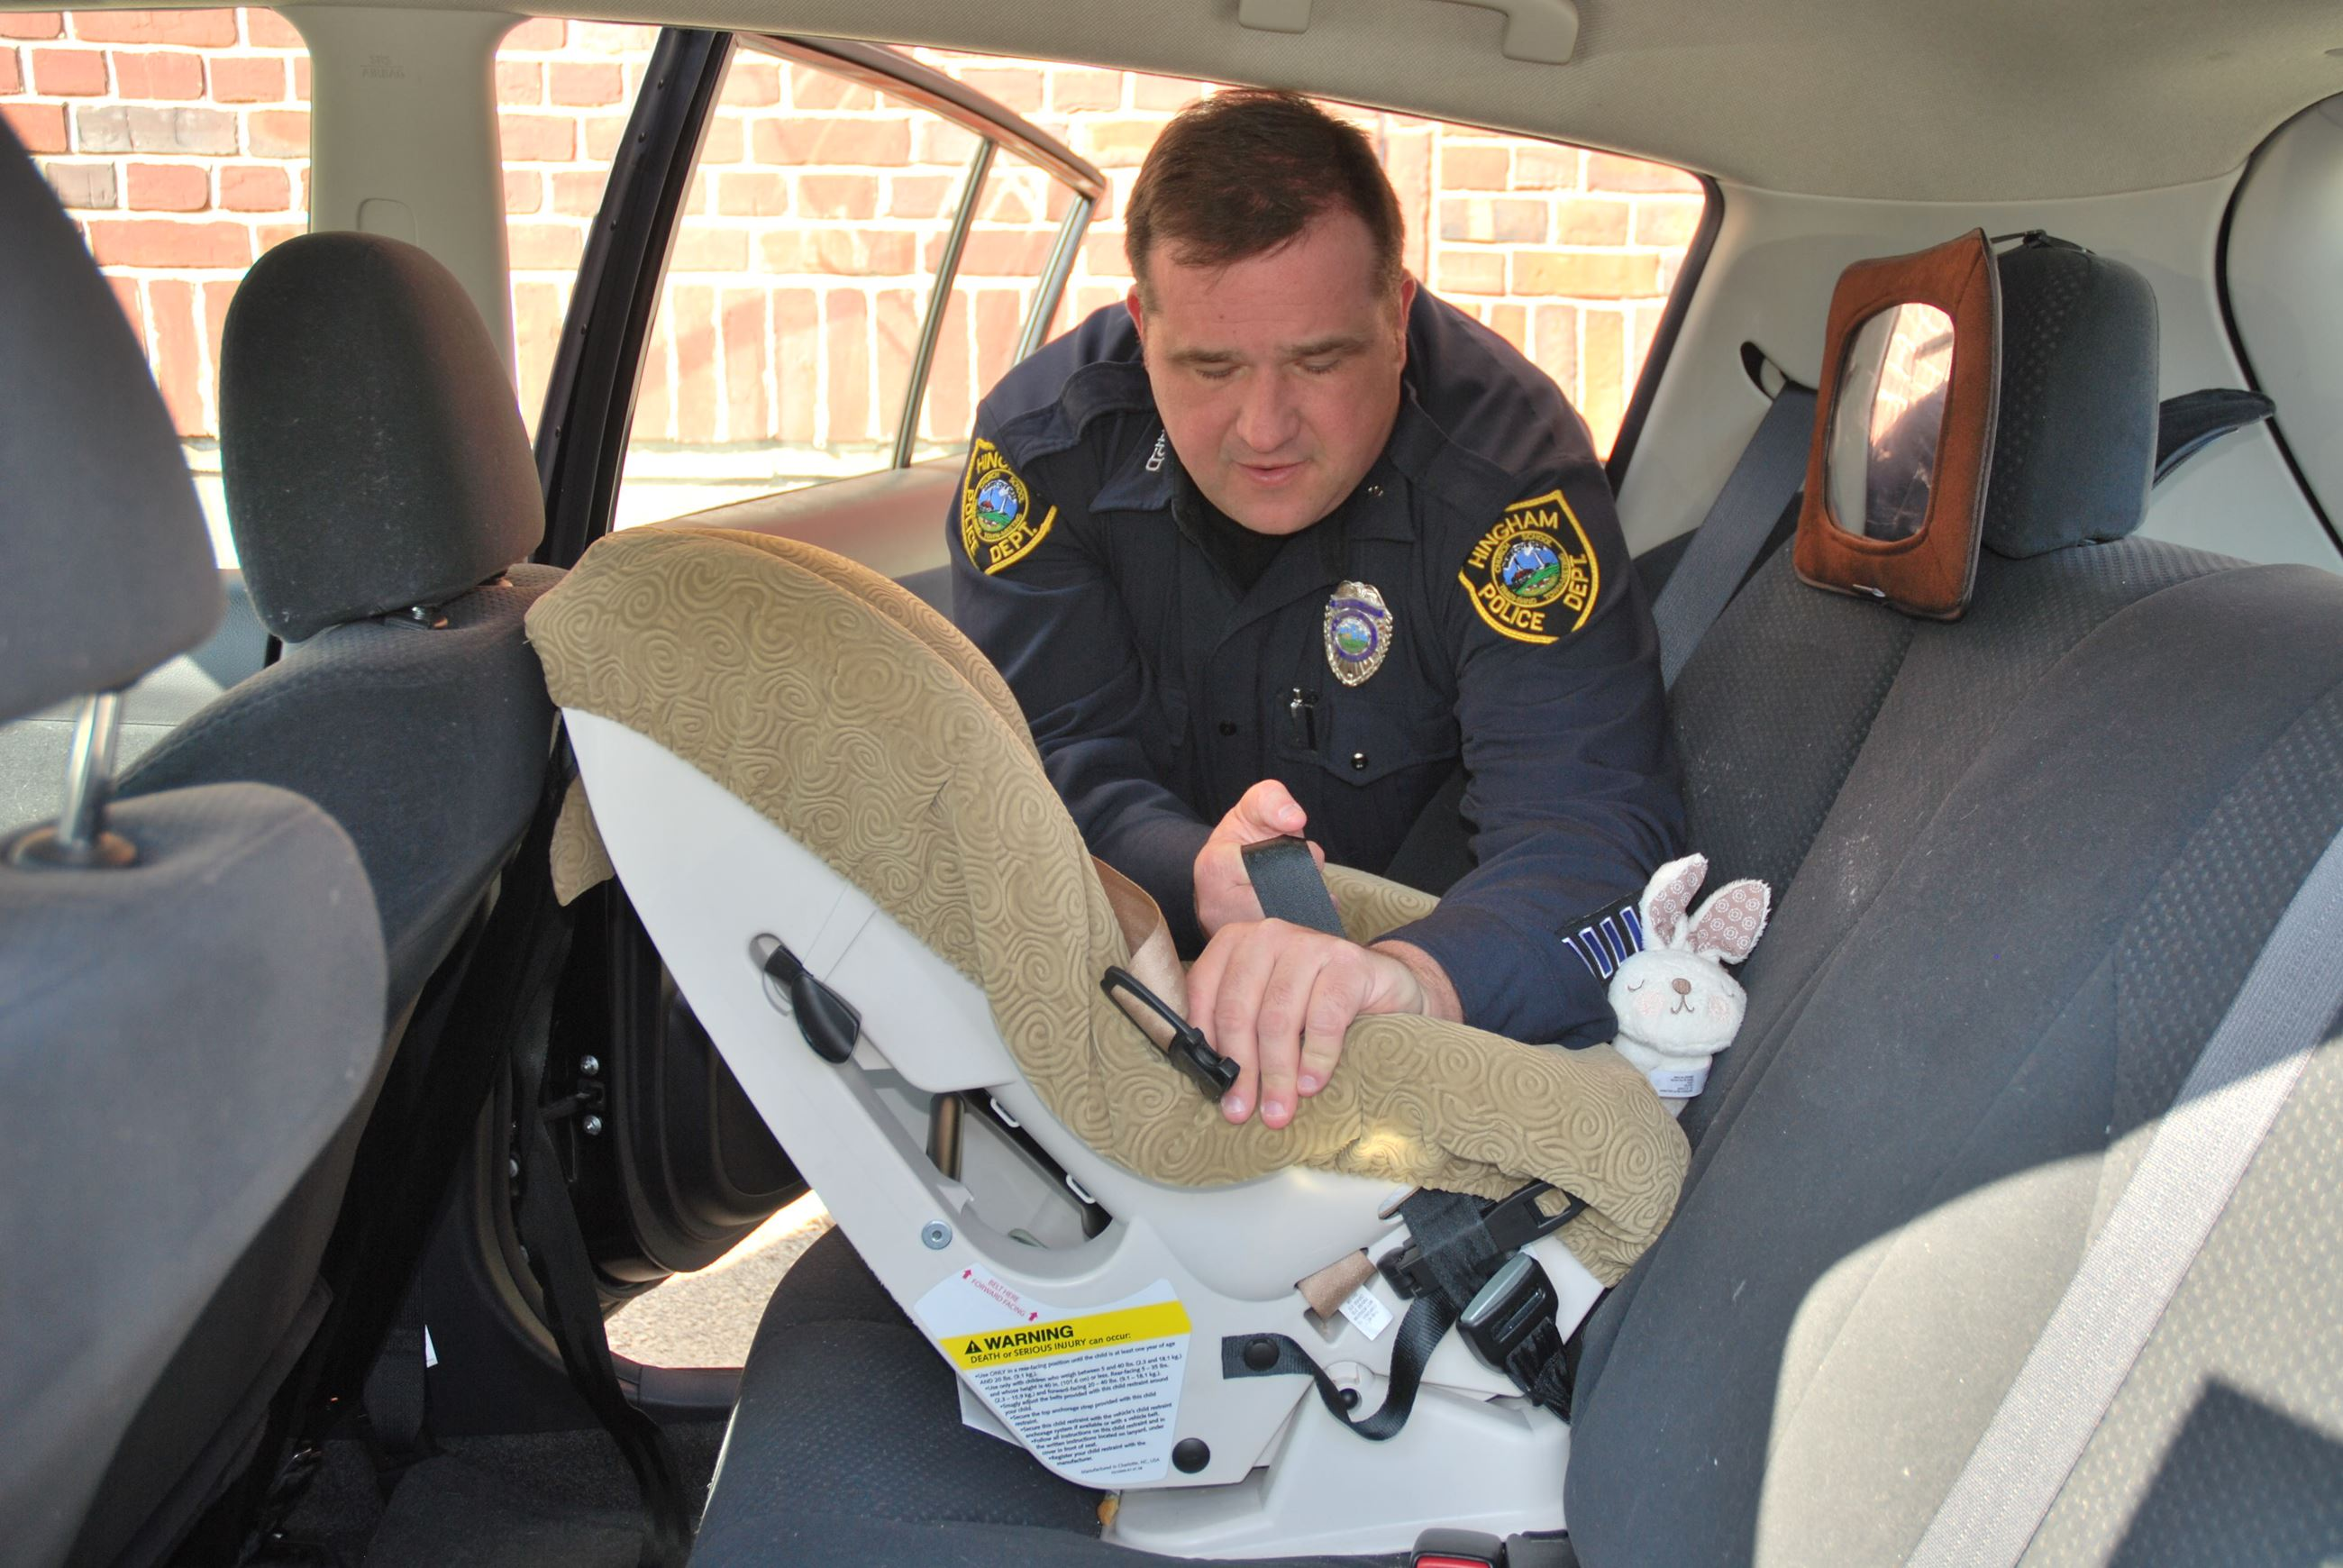 Police Officer Installing Carseat